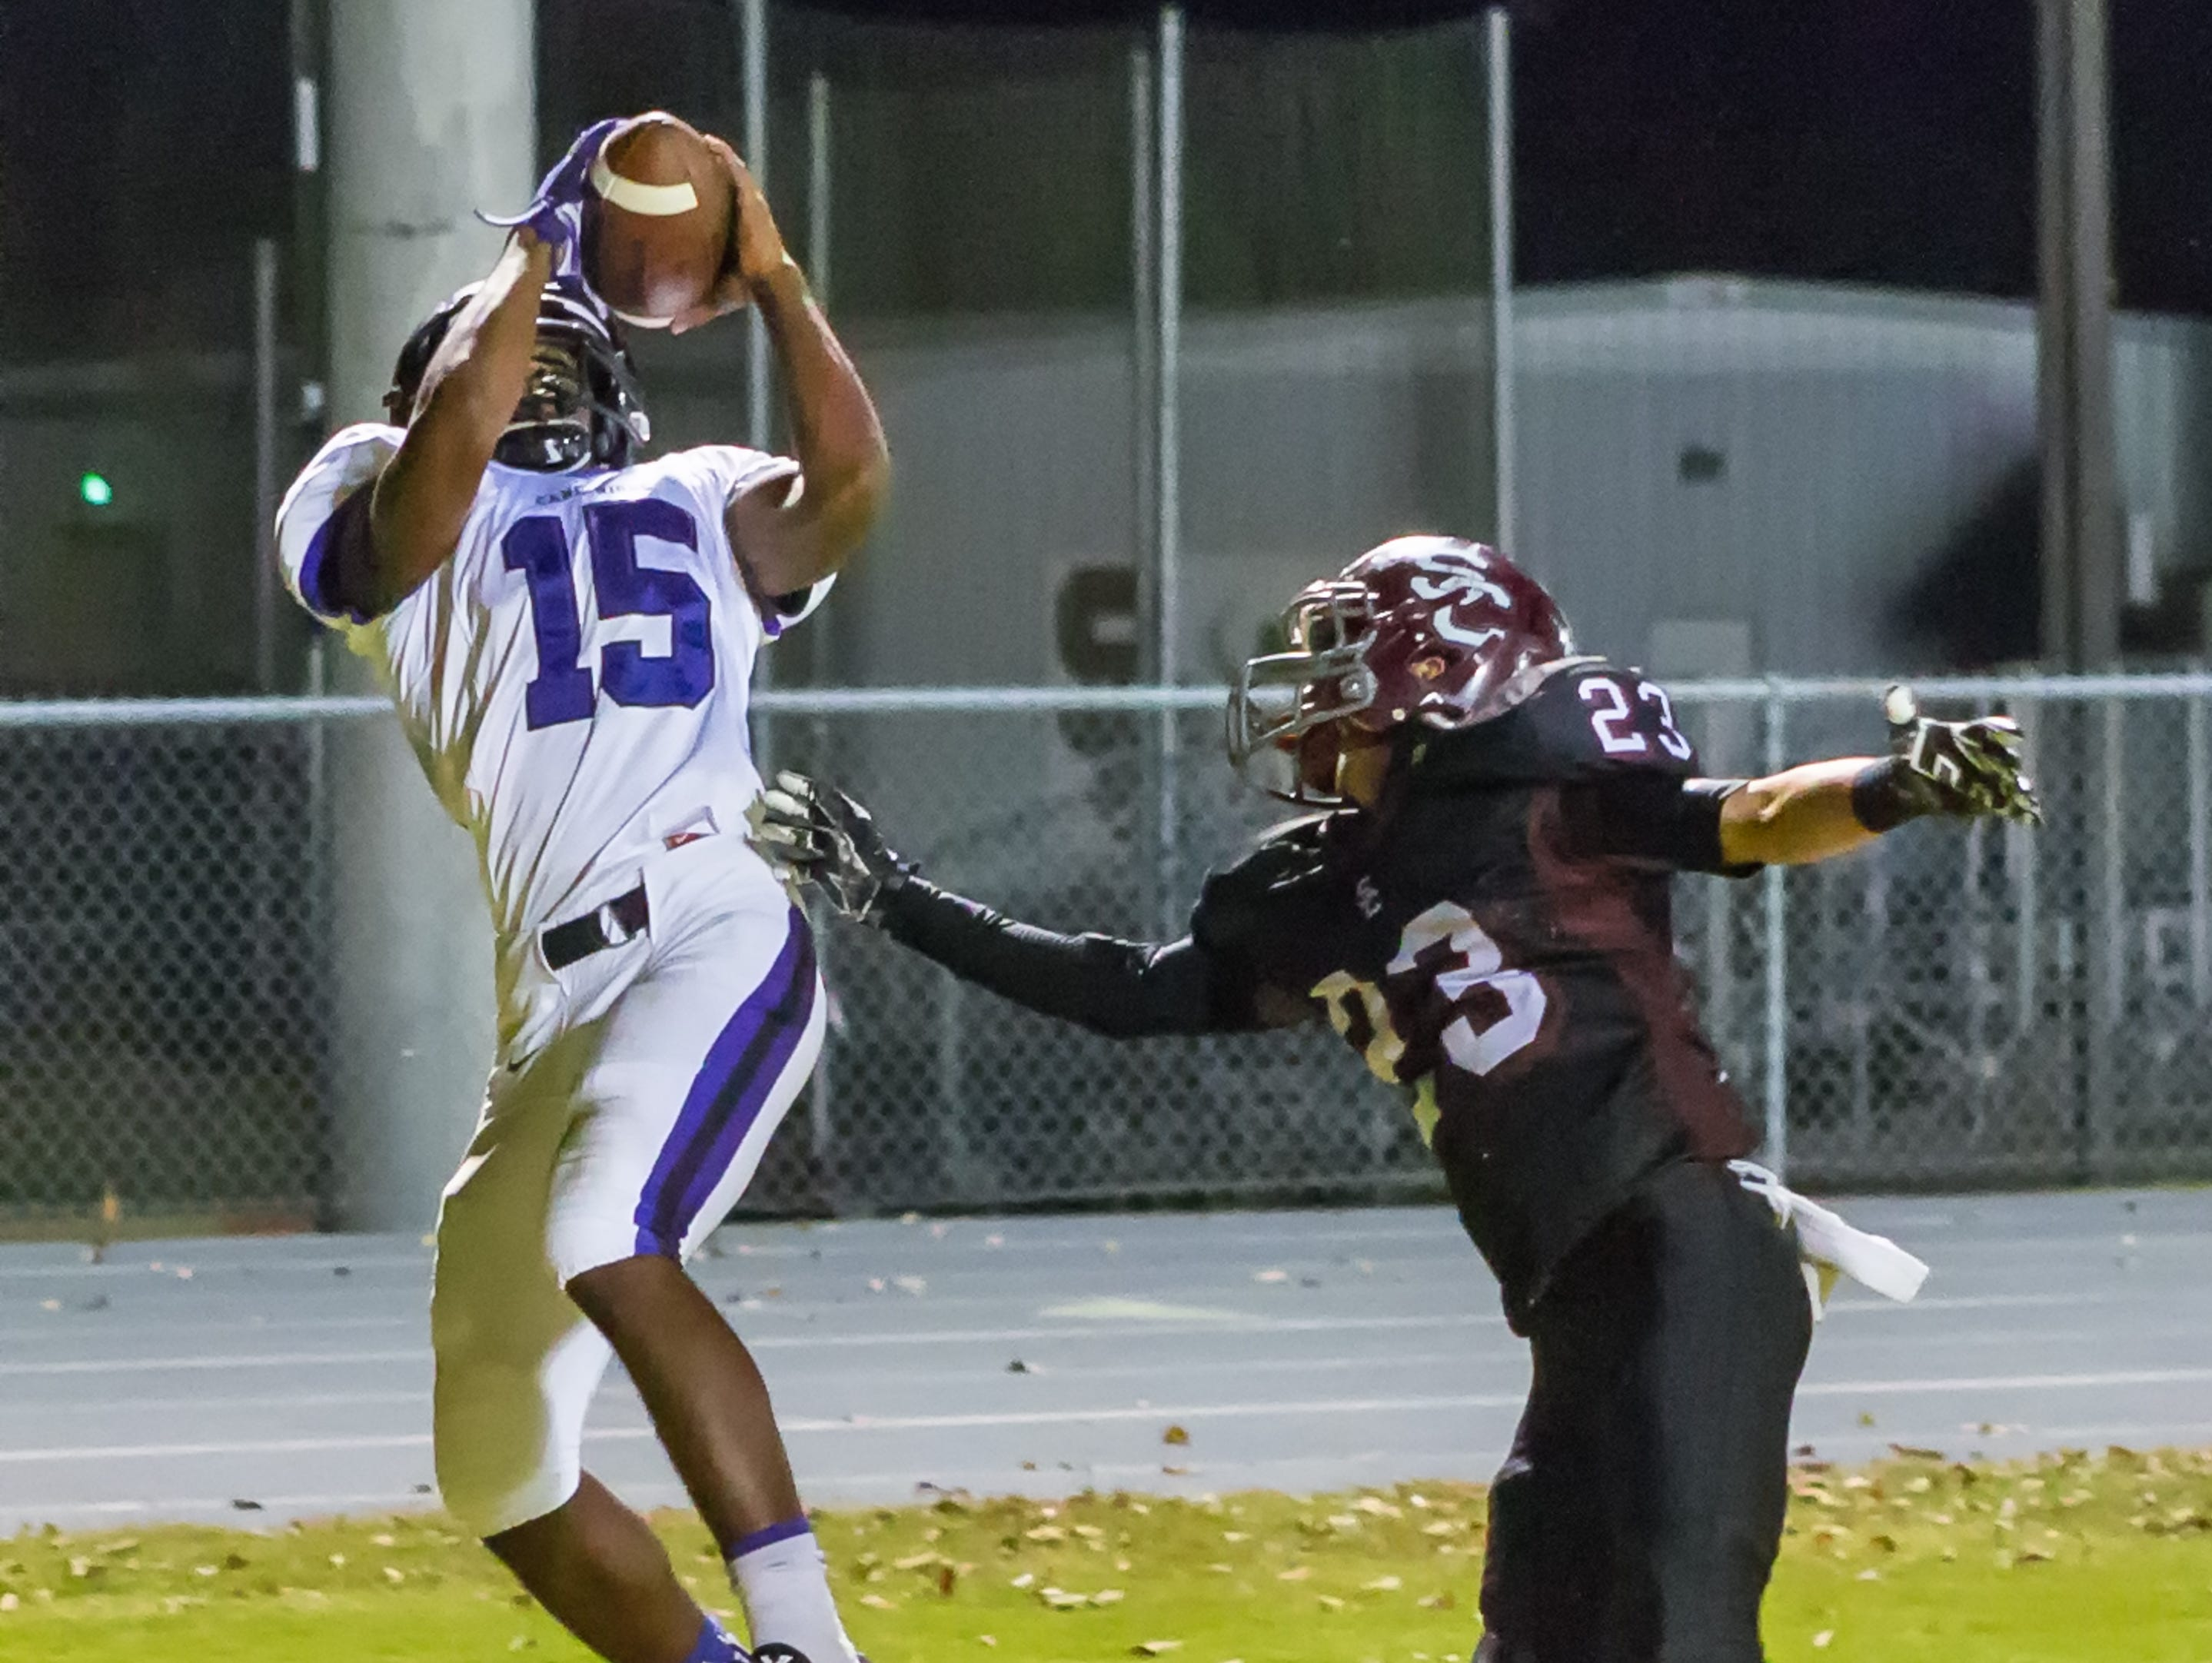 Cane Ridge's Jared Mccray, 15, catches a pass over Station Camp's, 23, Austin Hawkins on Friday, October 23, 2015.